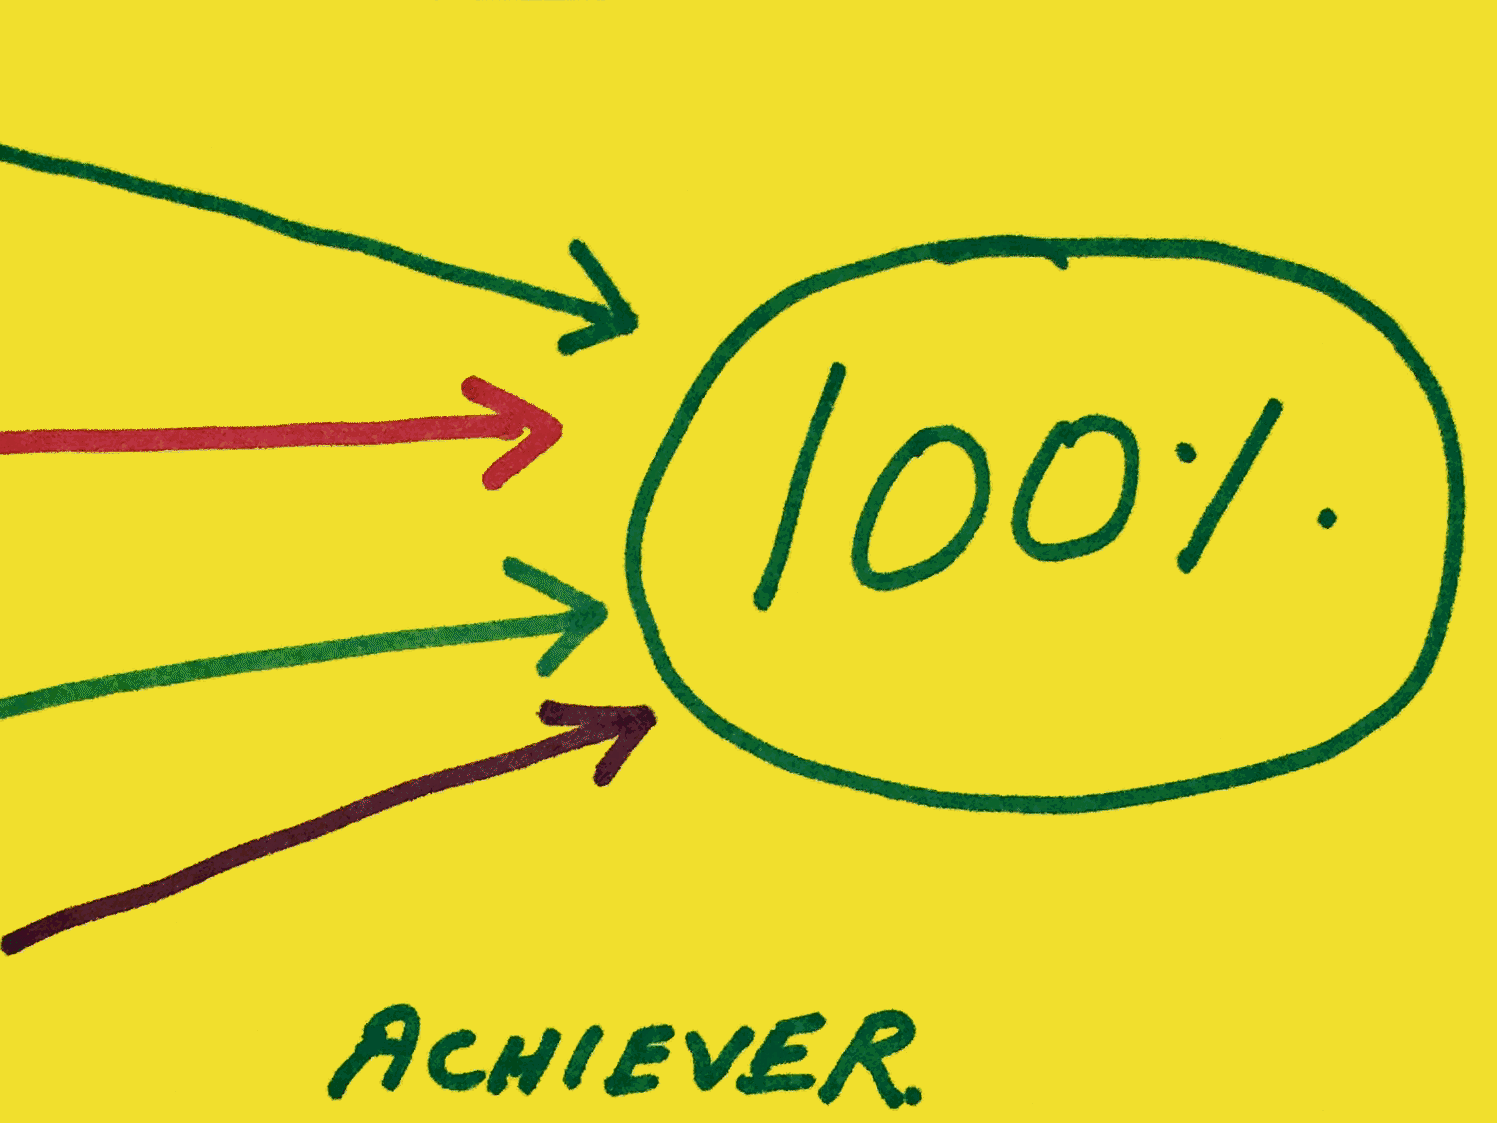 Achiever StrengthsFinder Singapore 100% Arrows